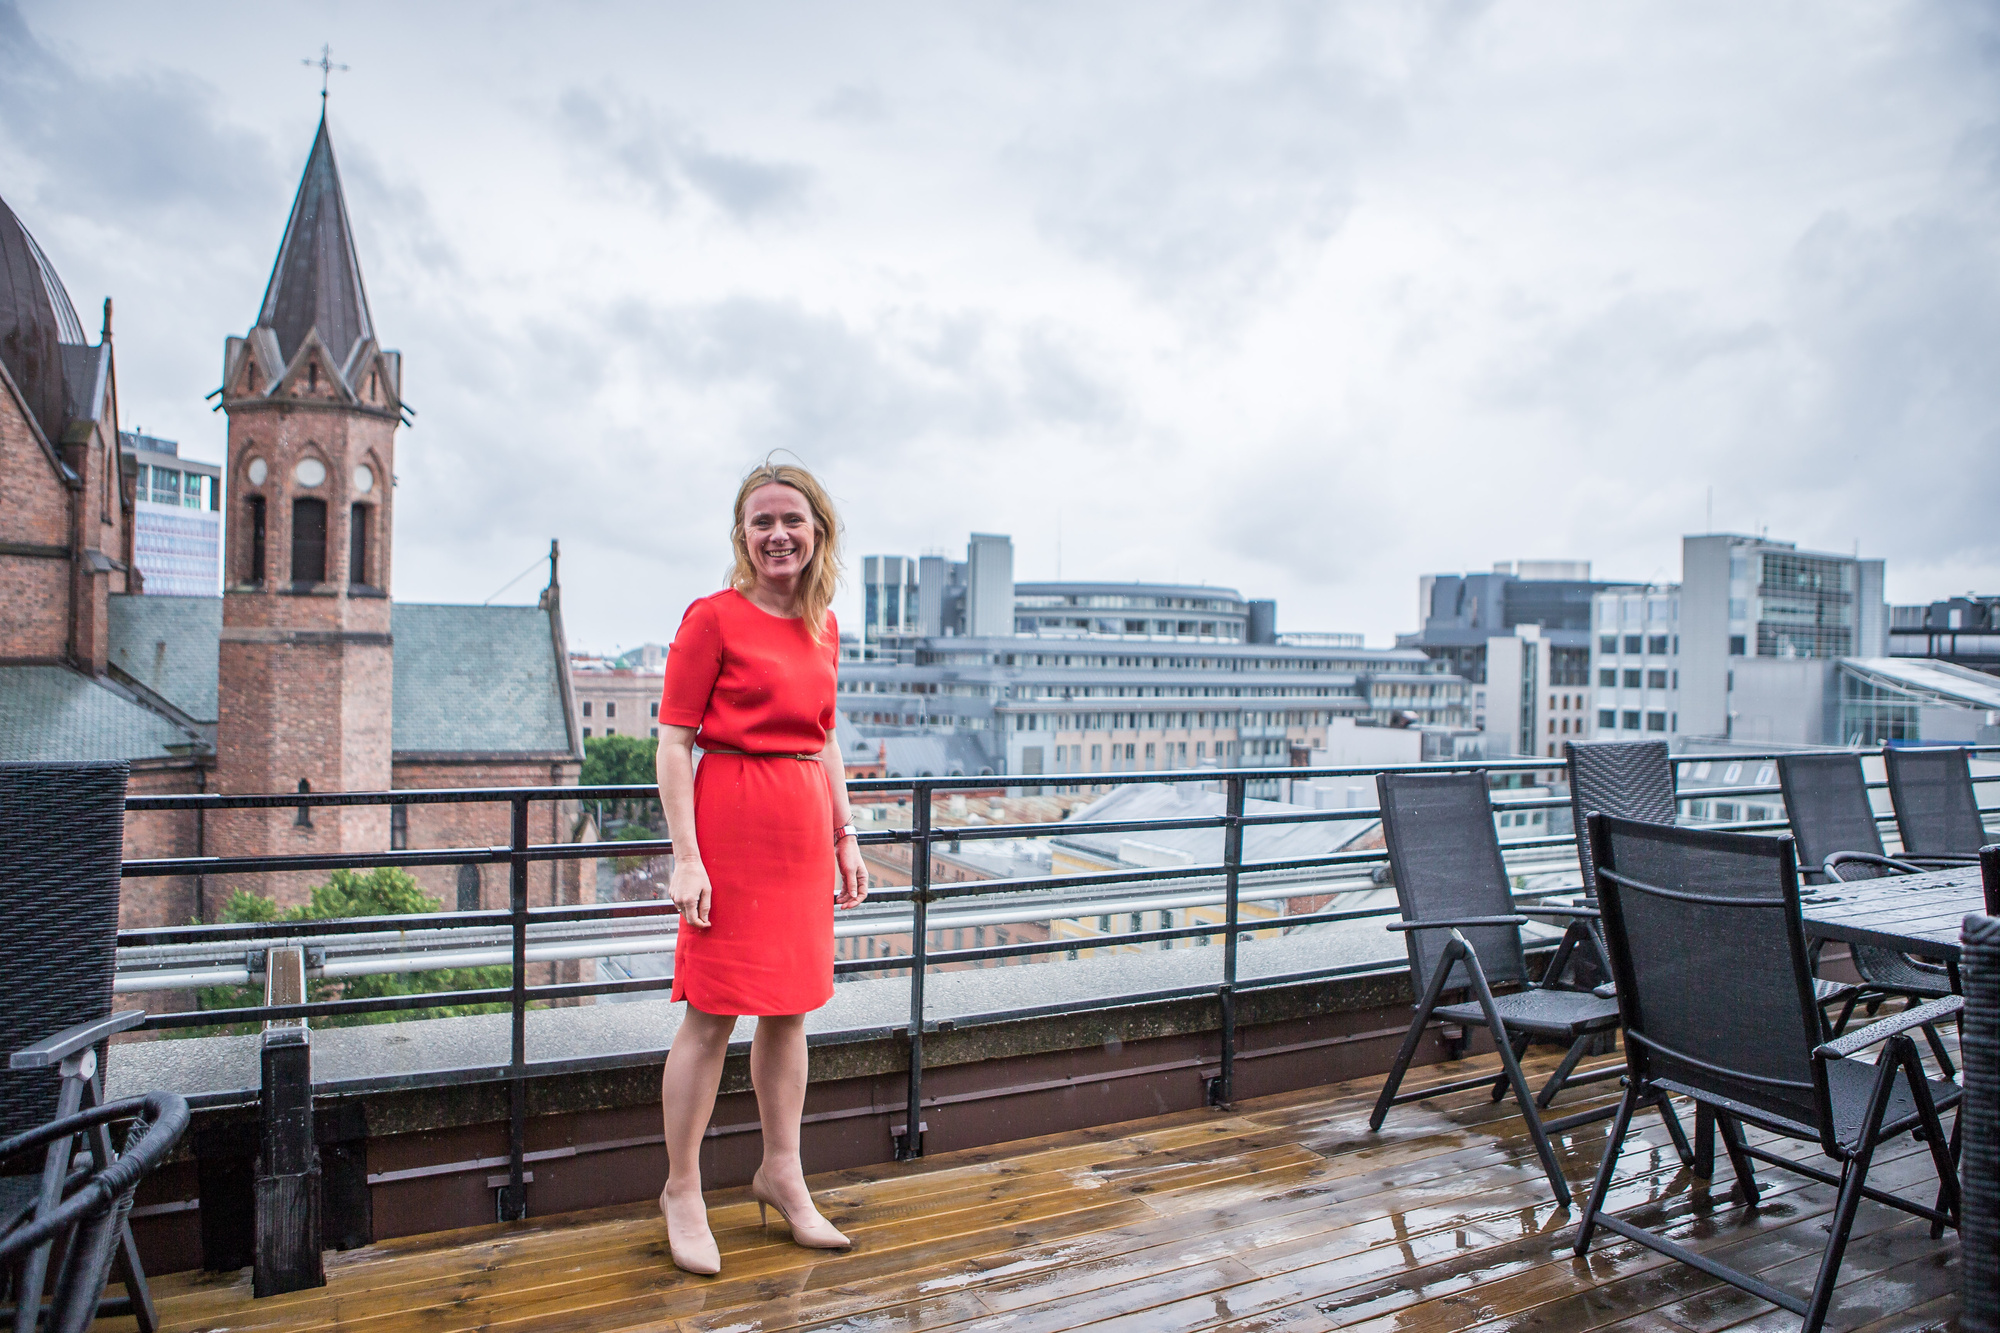 Norway's Minister of Labour Anniken Hauglie is passionate about social entrepreneurship